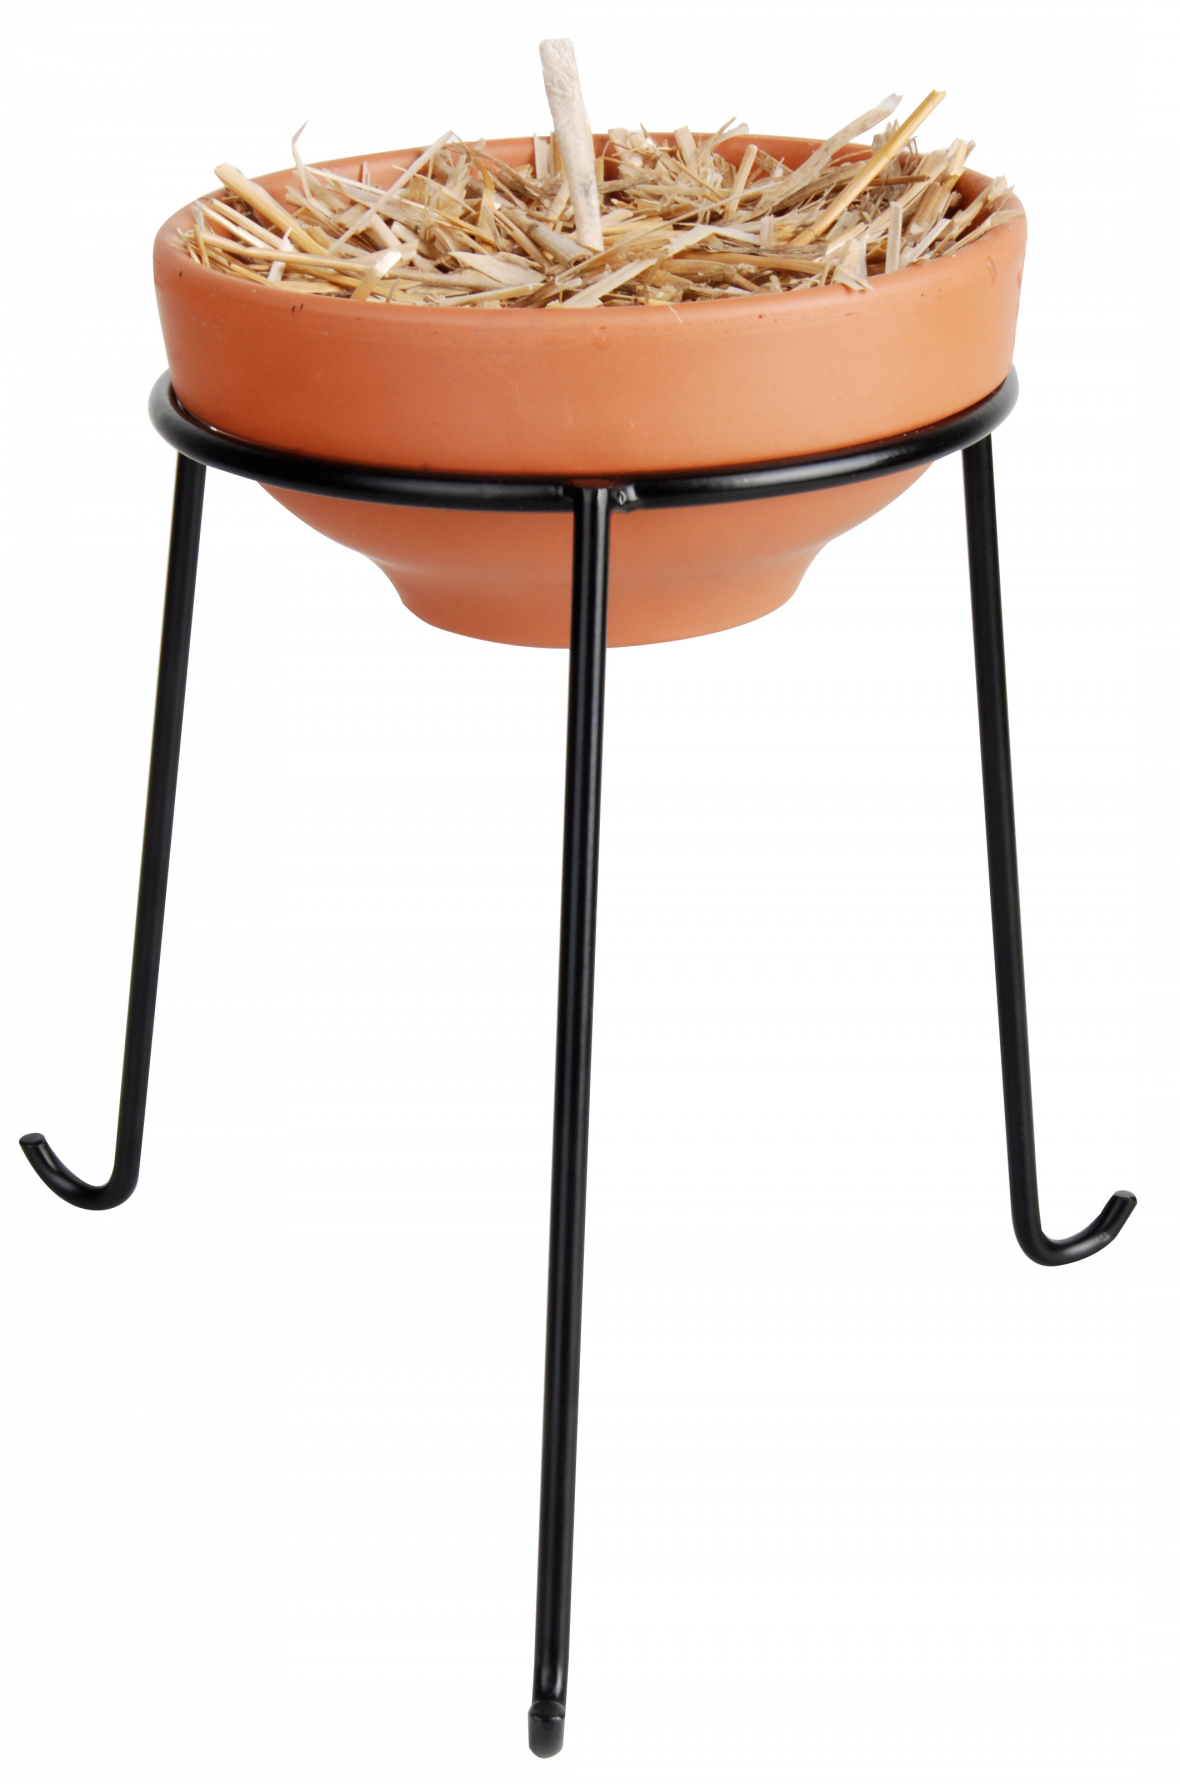 High black metal stand for fire pot